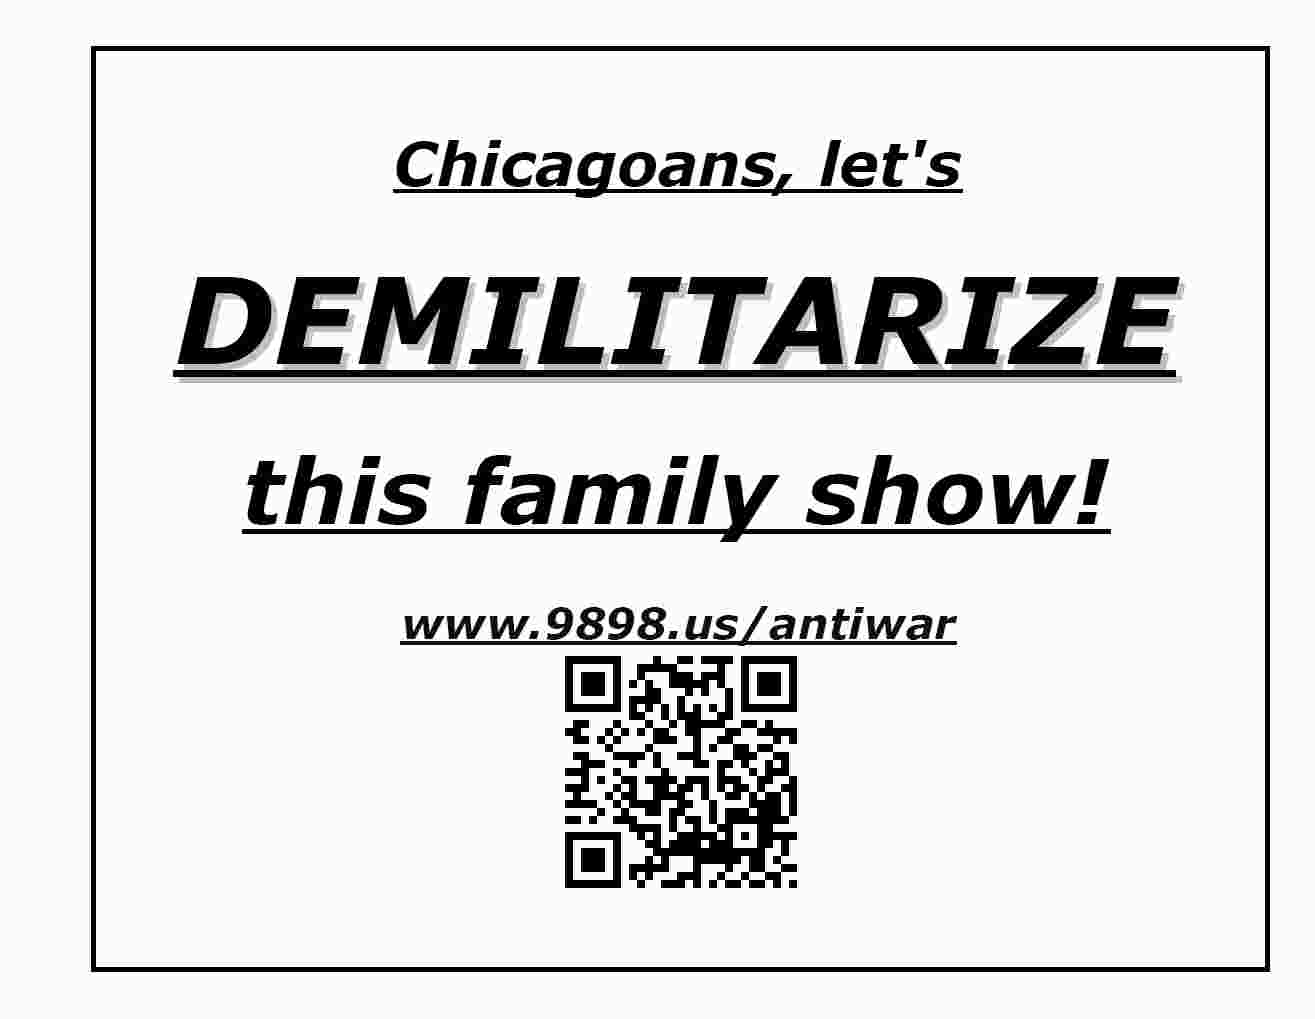 Demilitarize this show!